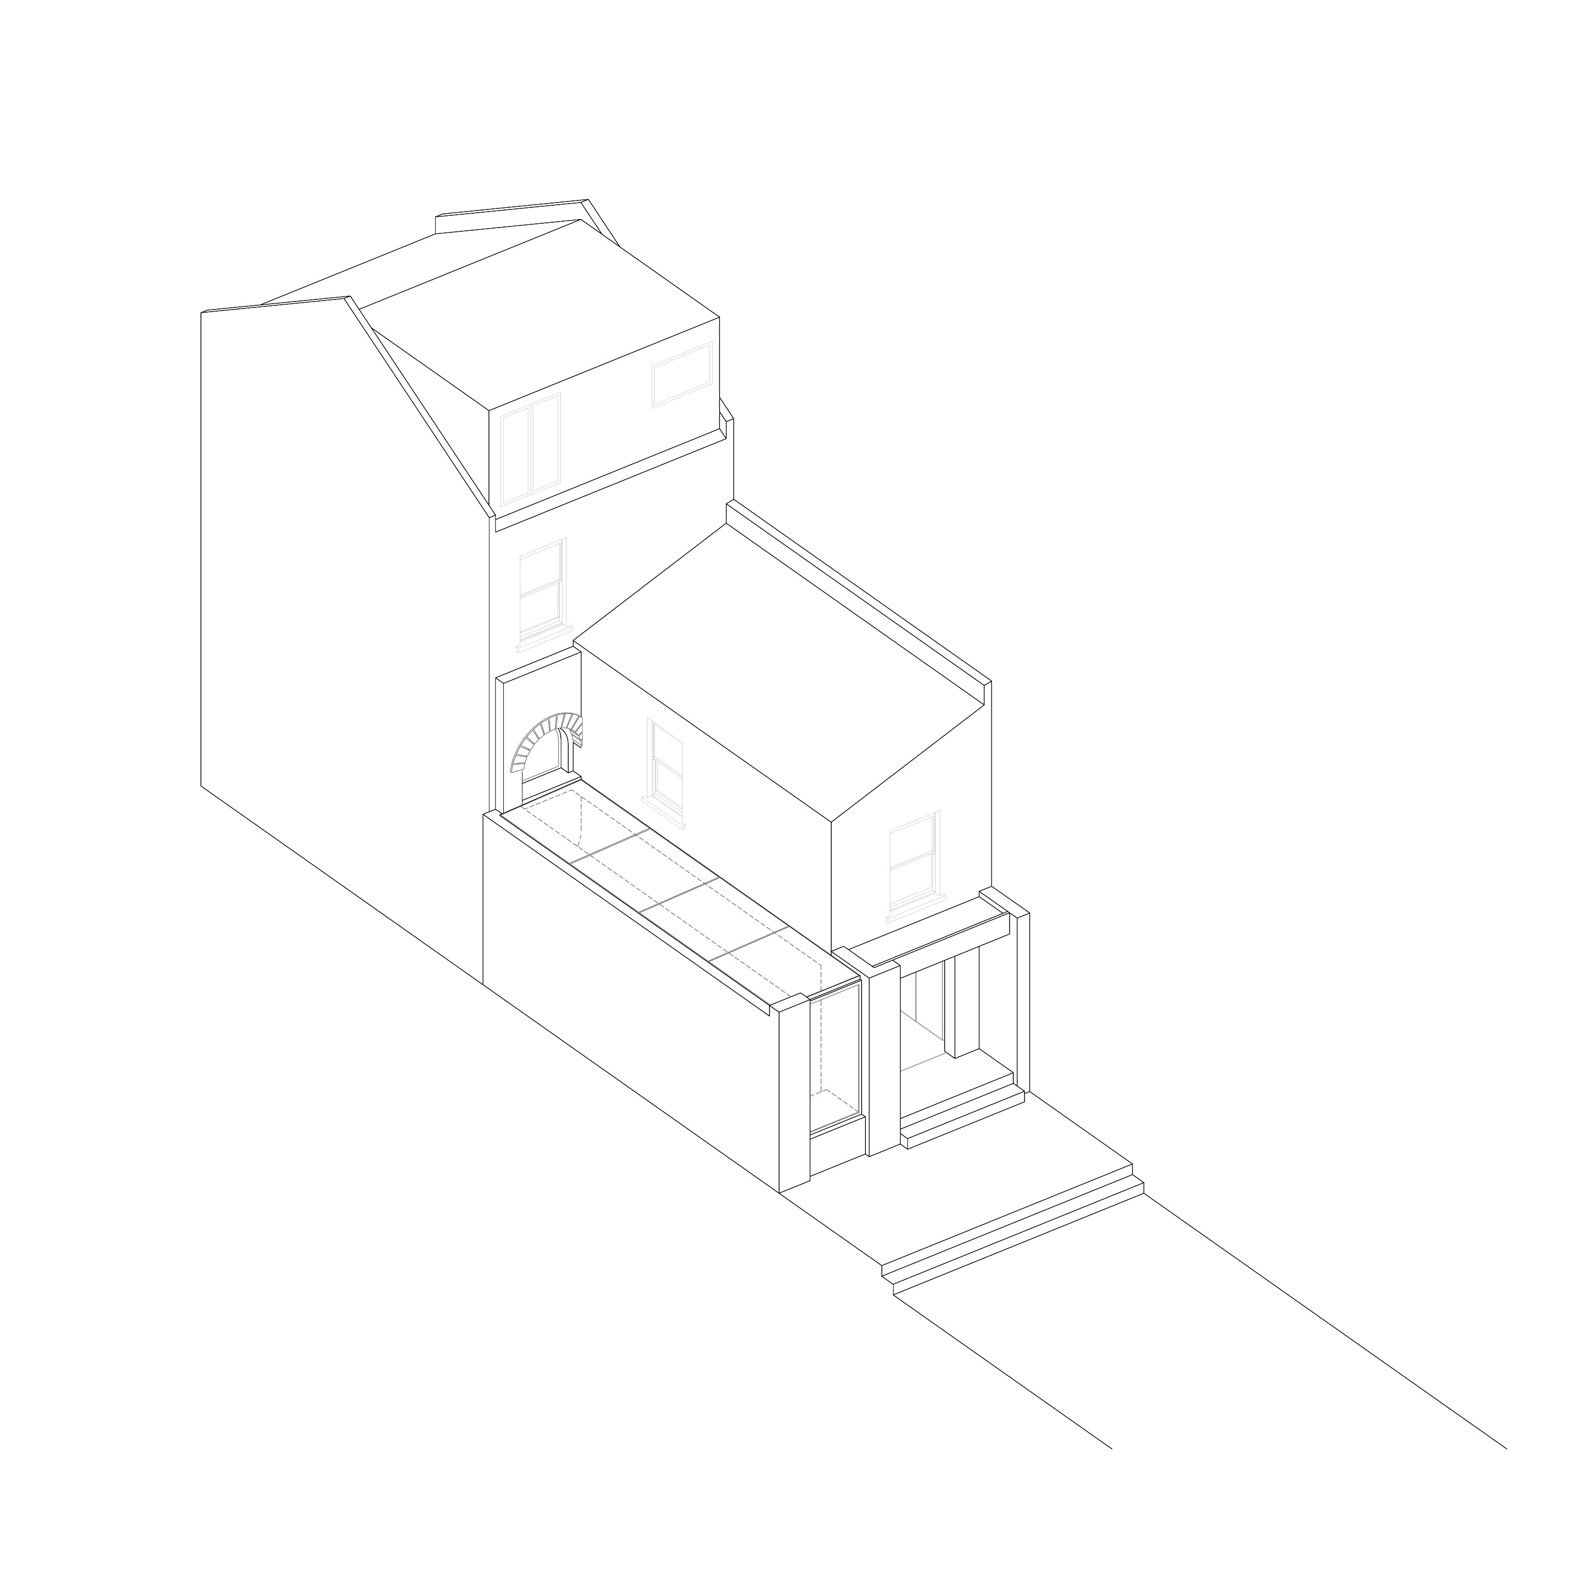 Glyn House isometric diagram  Photo 18 of 19 in A London Victorian Gets a Dreamy Addition Anchored by a Terrazzo Island